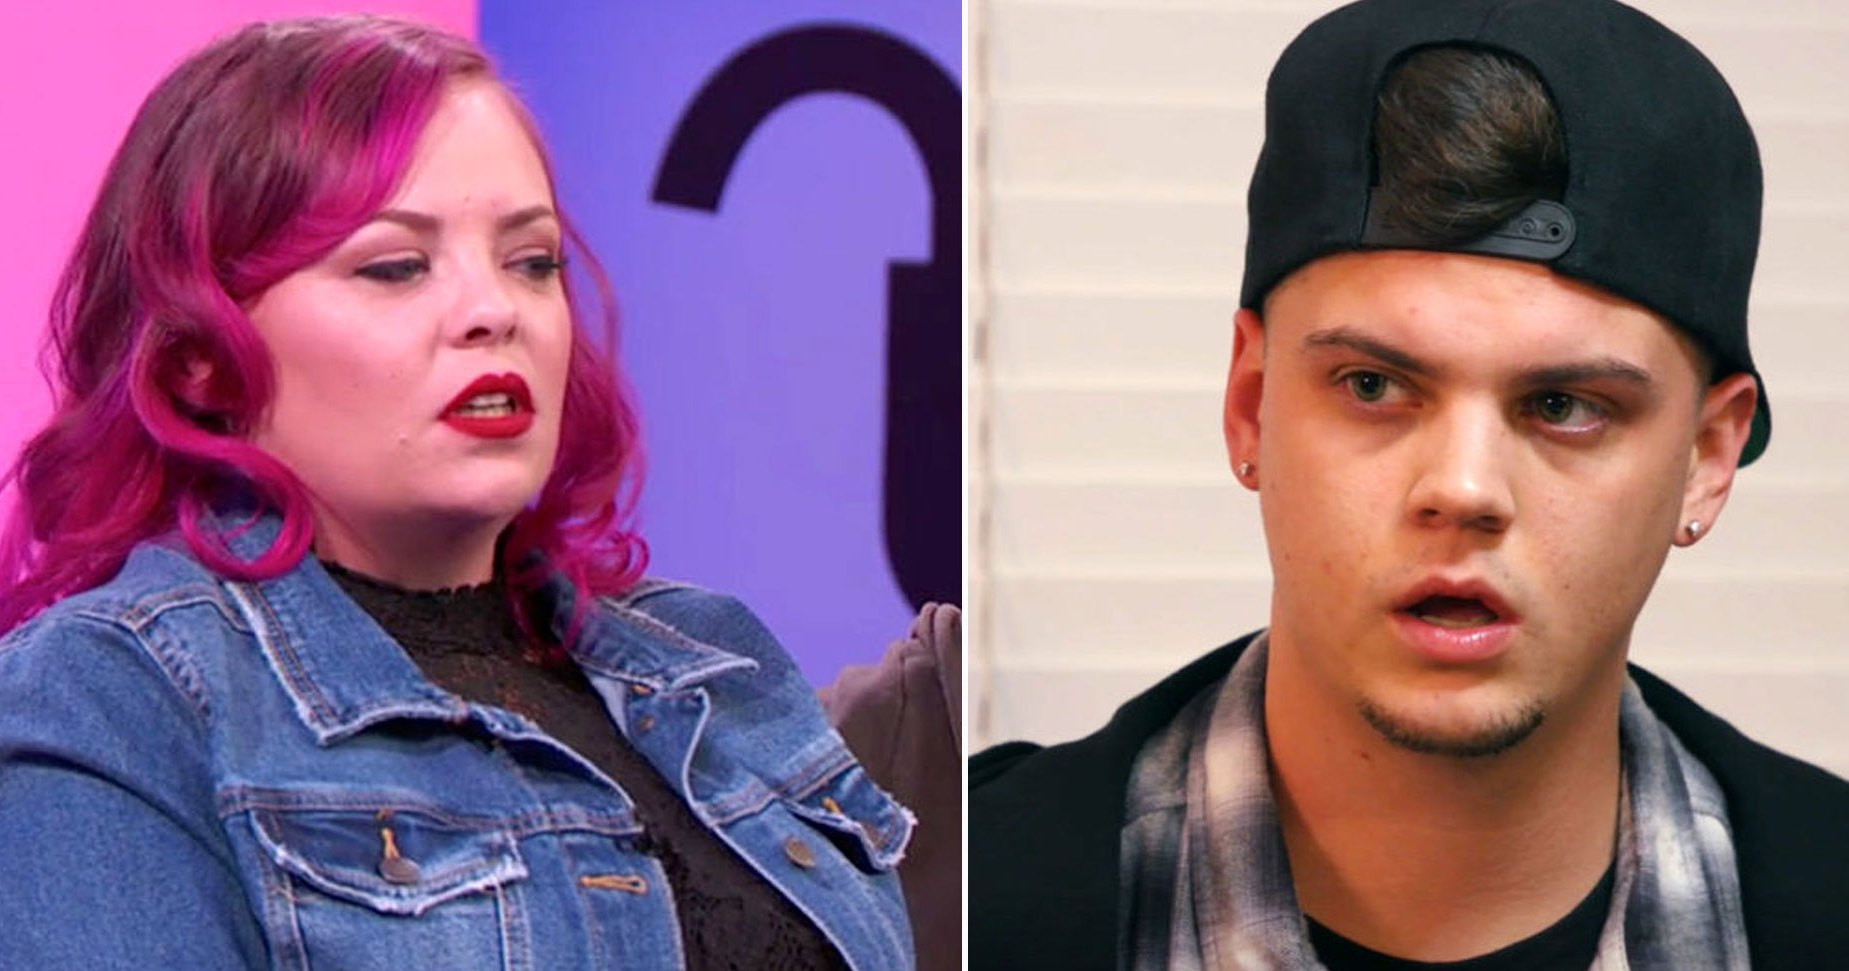 All of the Times Catelynn Lowell and Tyler Baltierra Have Clapped Back on Social Media